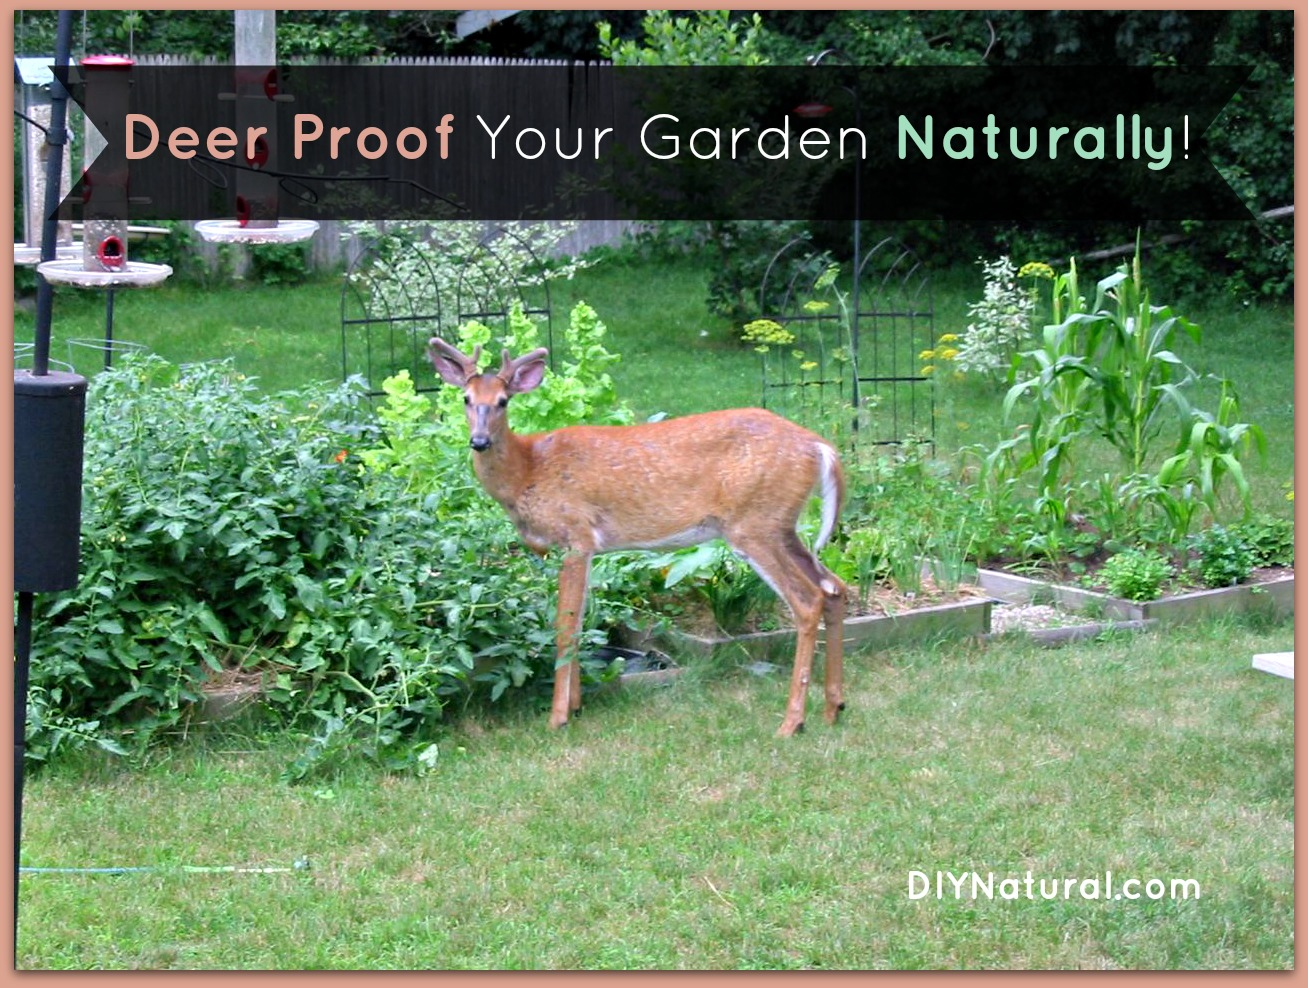 deer proof your garden and yard naturally - Deer Proof Vegetable Garden Ideas